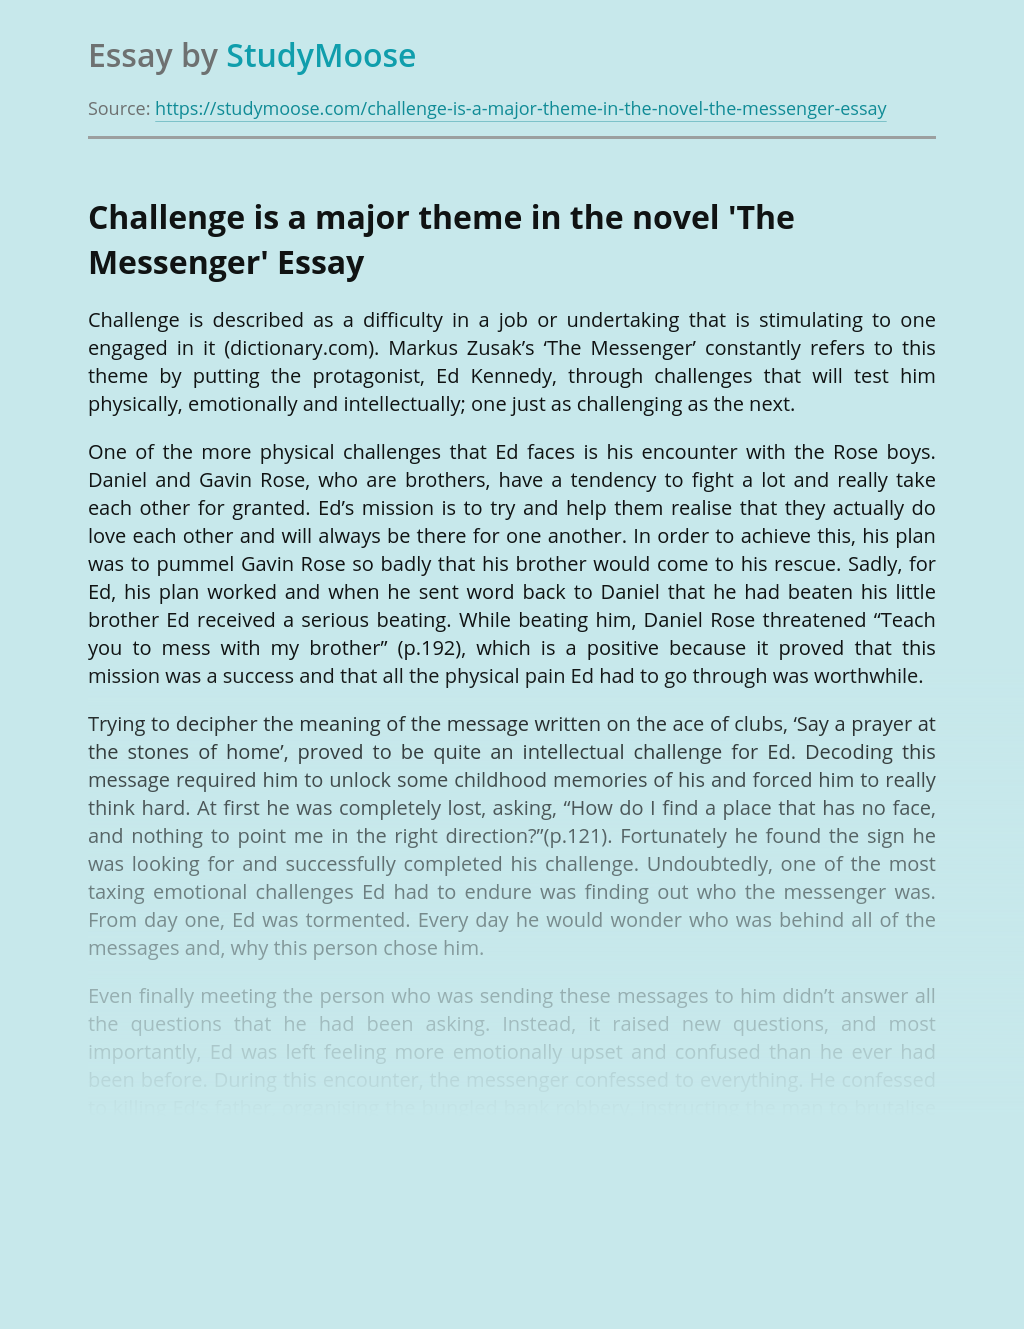 Challenge is a major theme in the novel 'The Messenger'